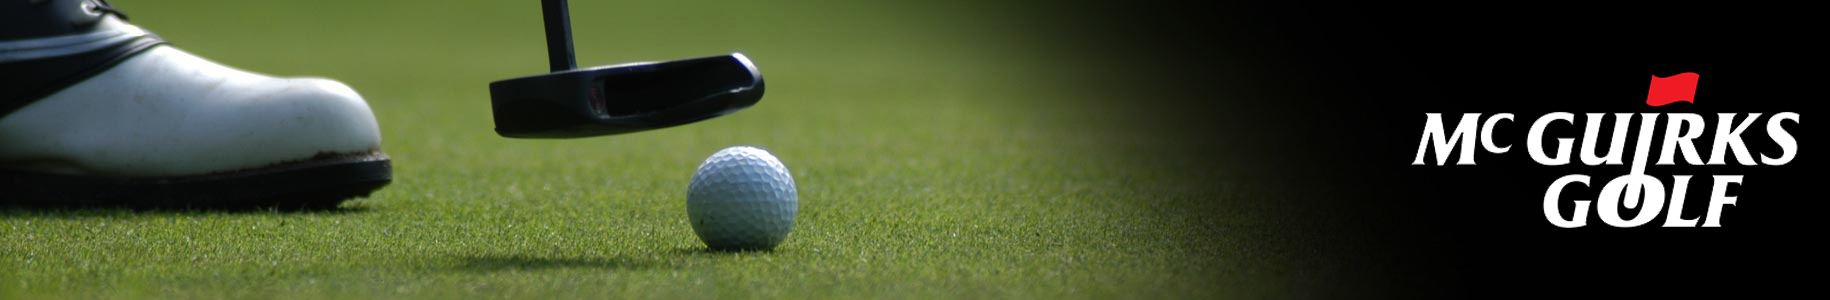 Careers with McGuirks Golf